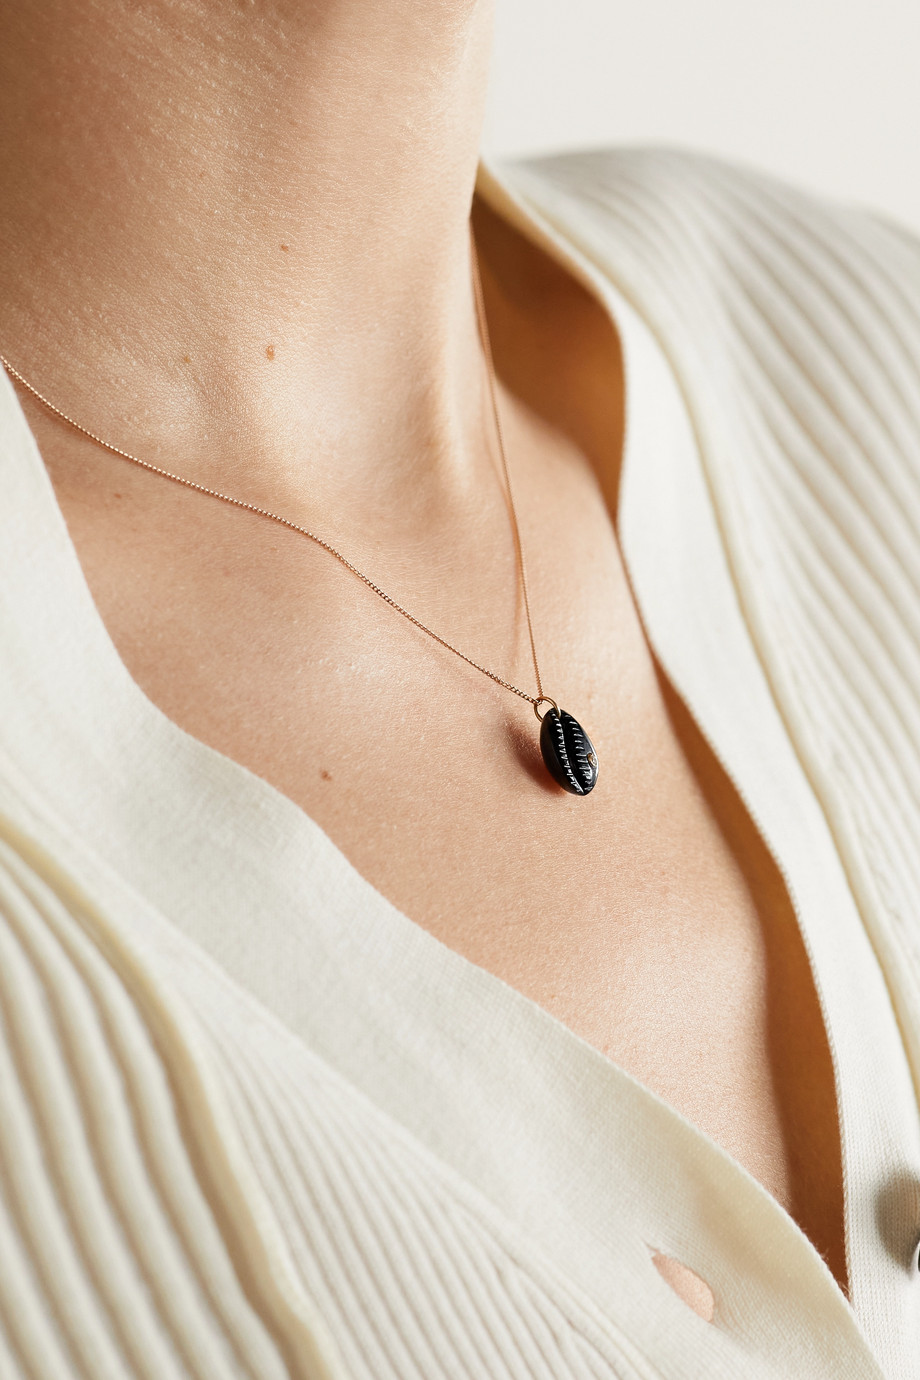 PASCALE MONVOISIN Cauri N°2 9-karat rose gold, onyx and diamond necklace